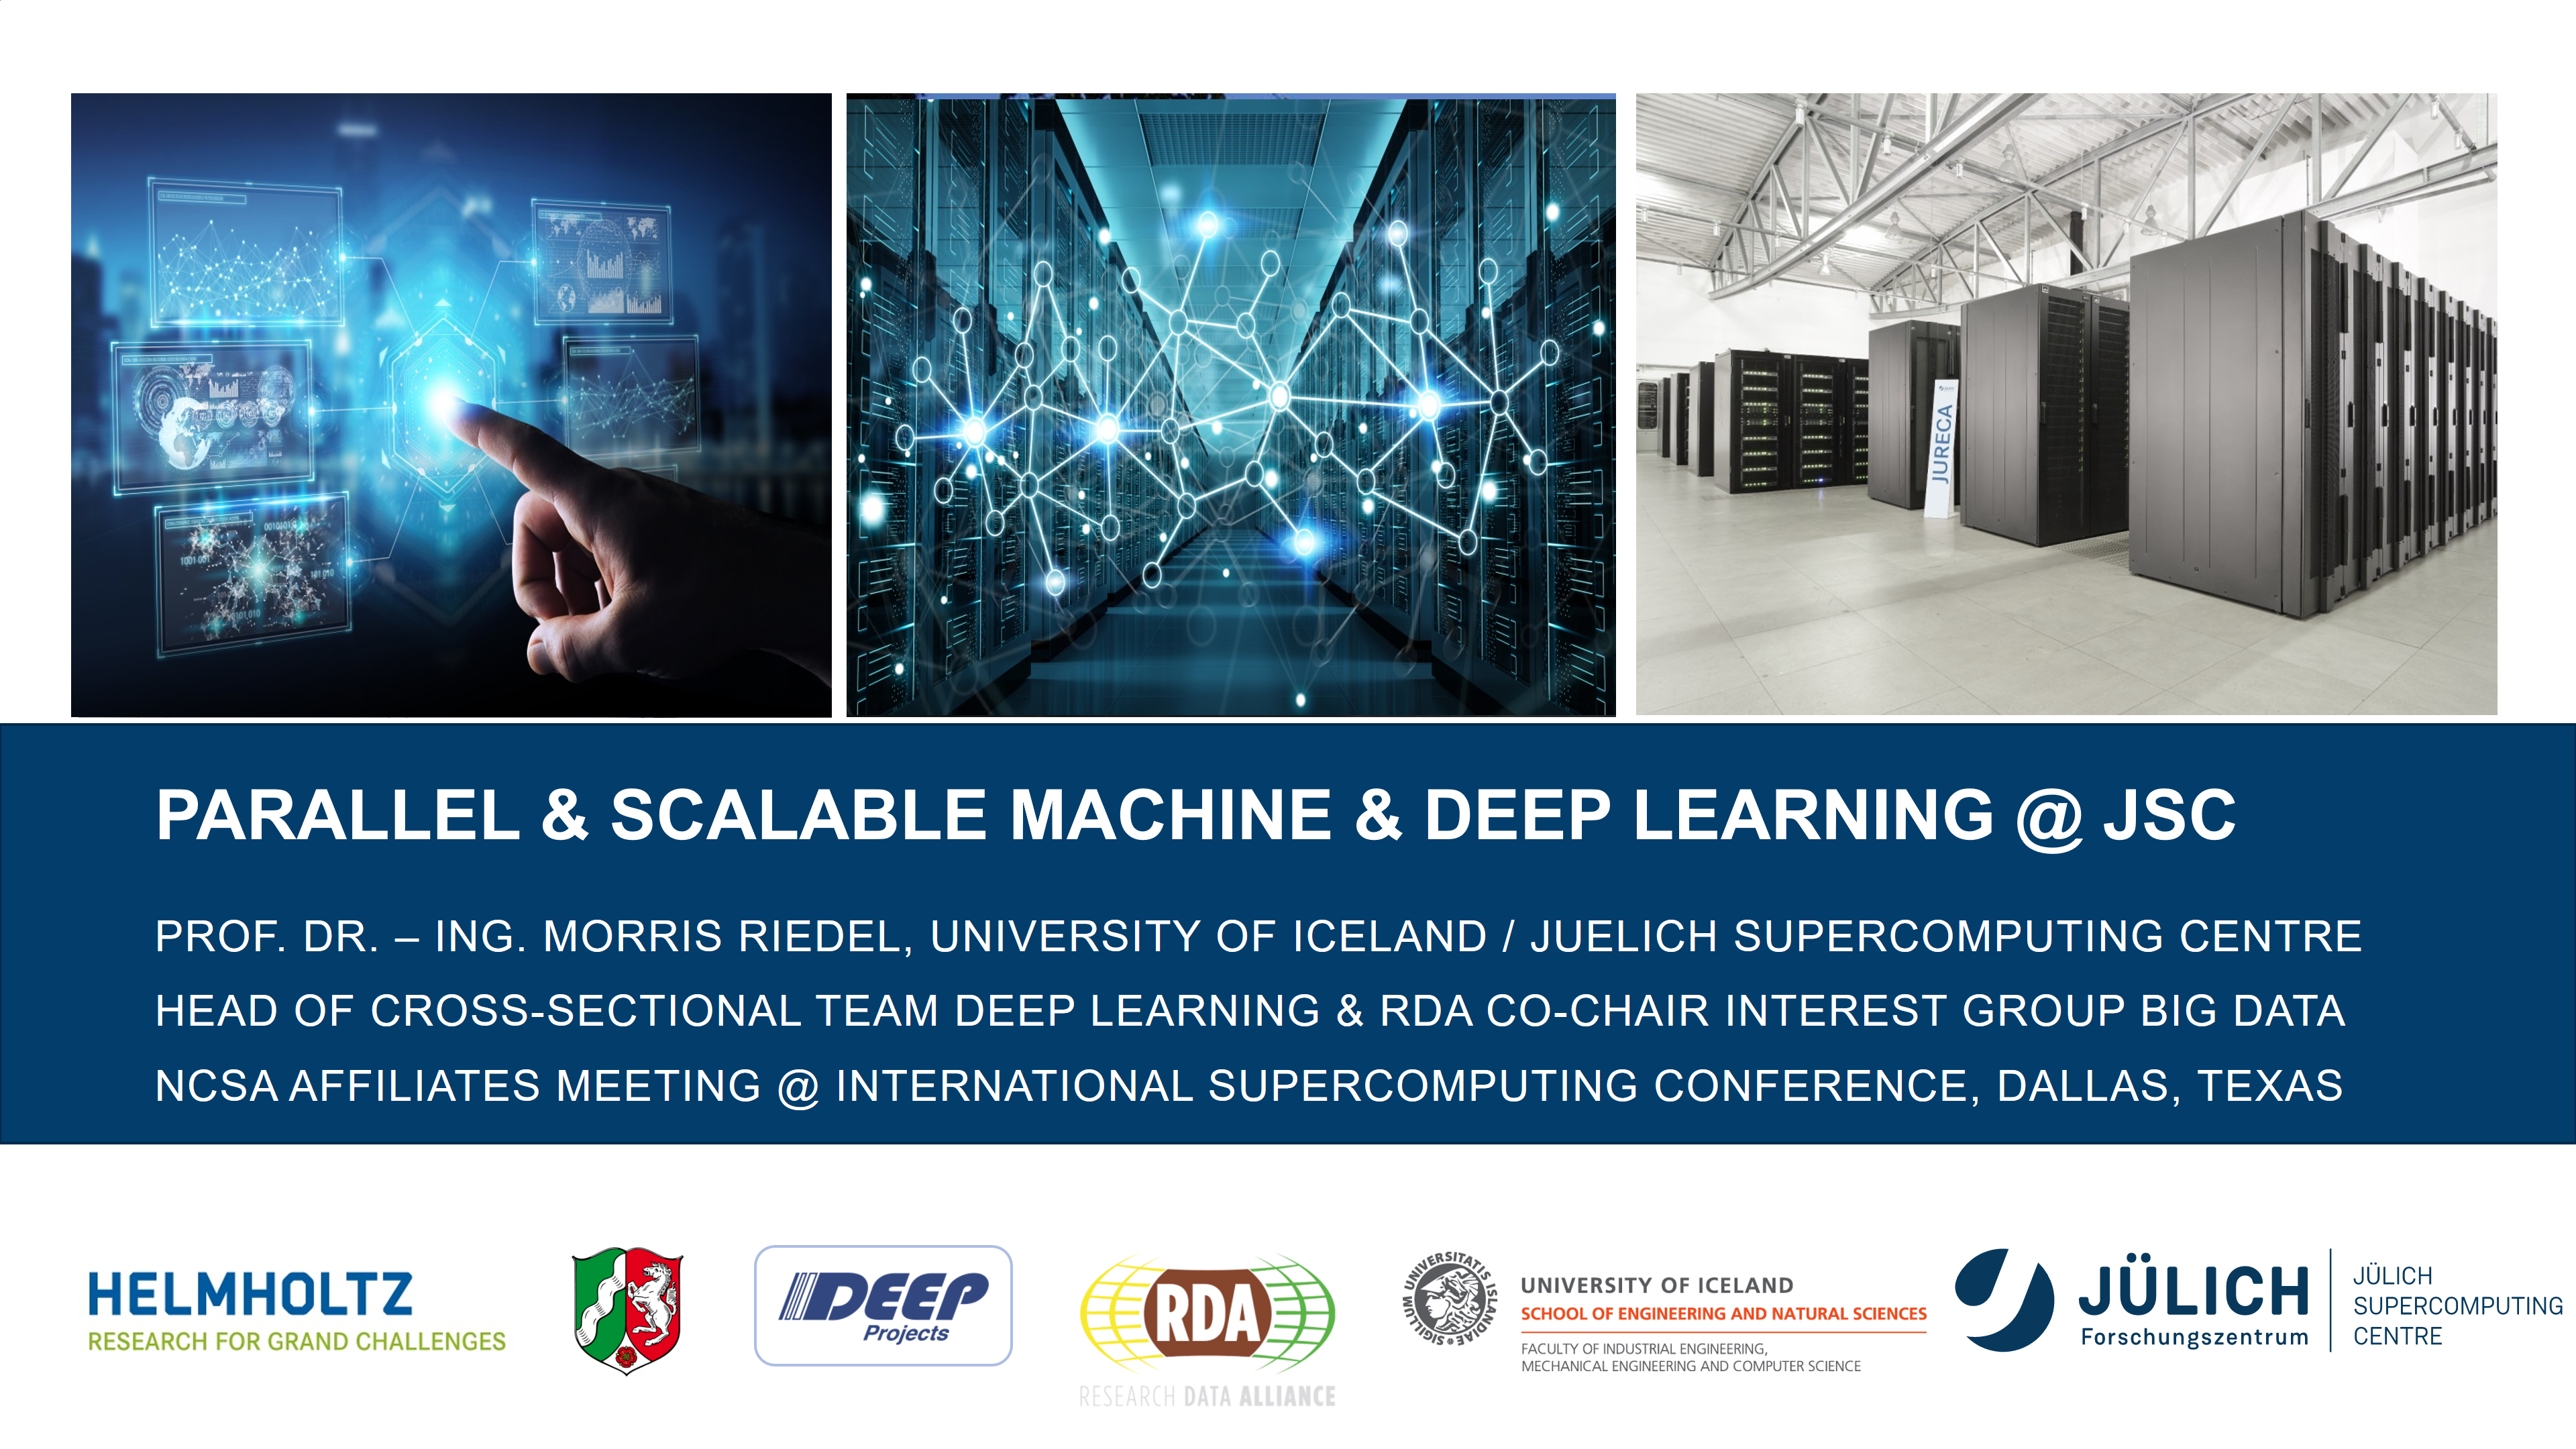 Parallel and Scalable Machine and Deep Learning at JSC